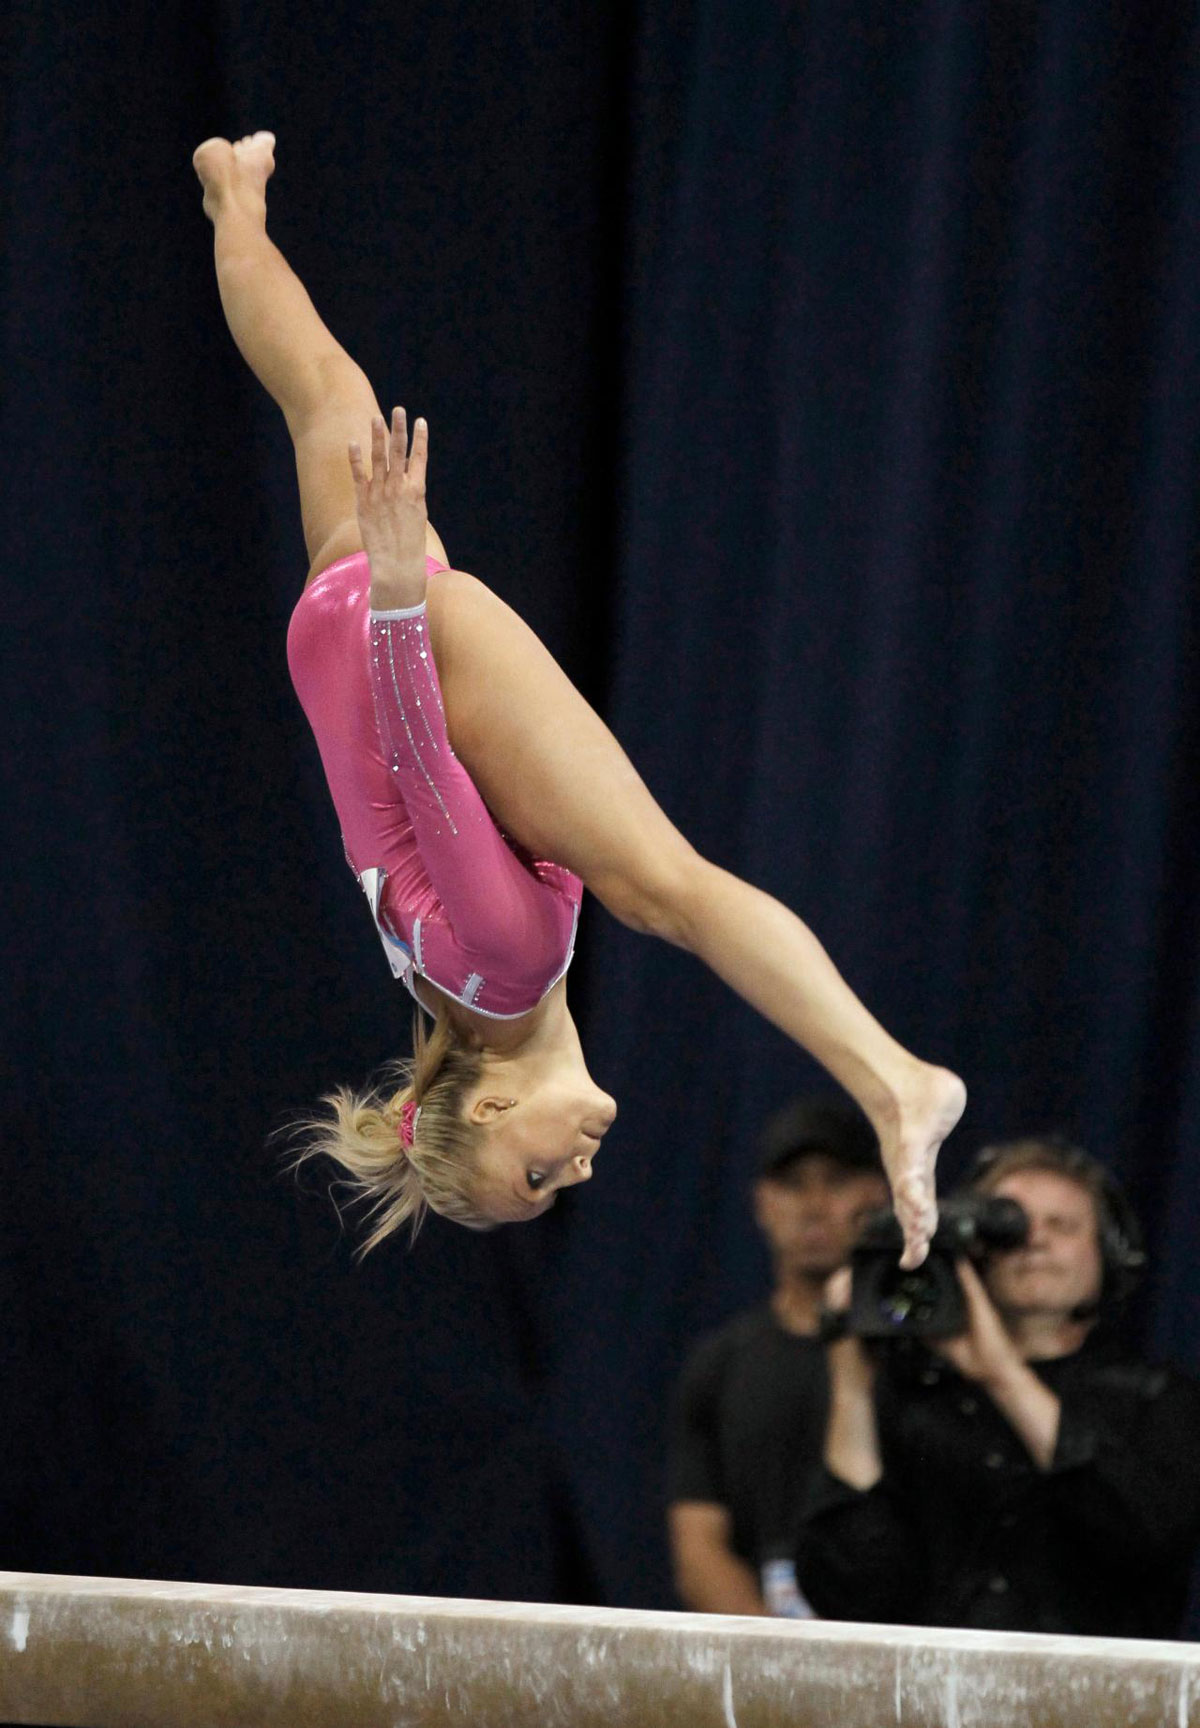 NASTIA LIUKIN at US Classic Gymnastics Meeting in Chicago ... Nastia Lueken